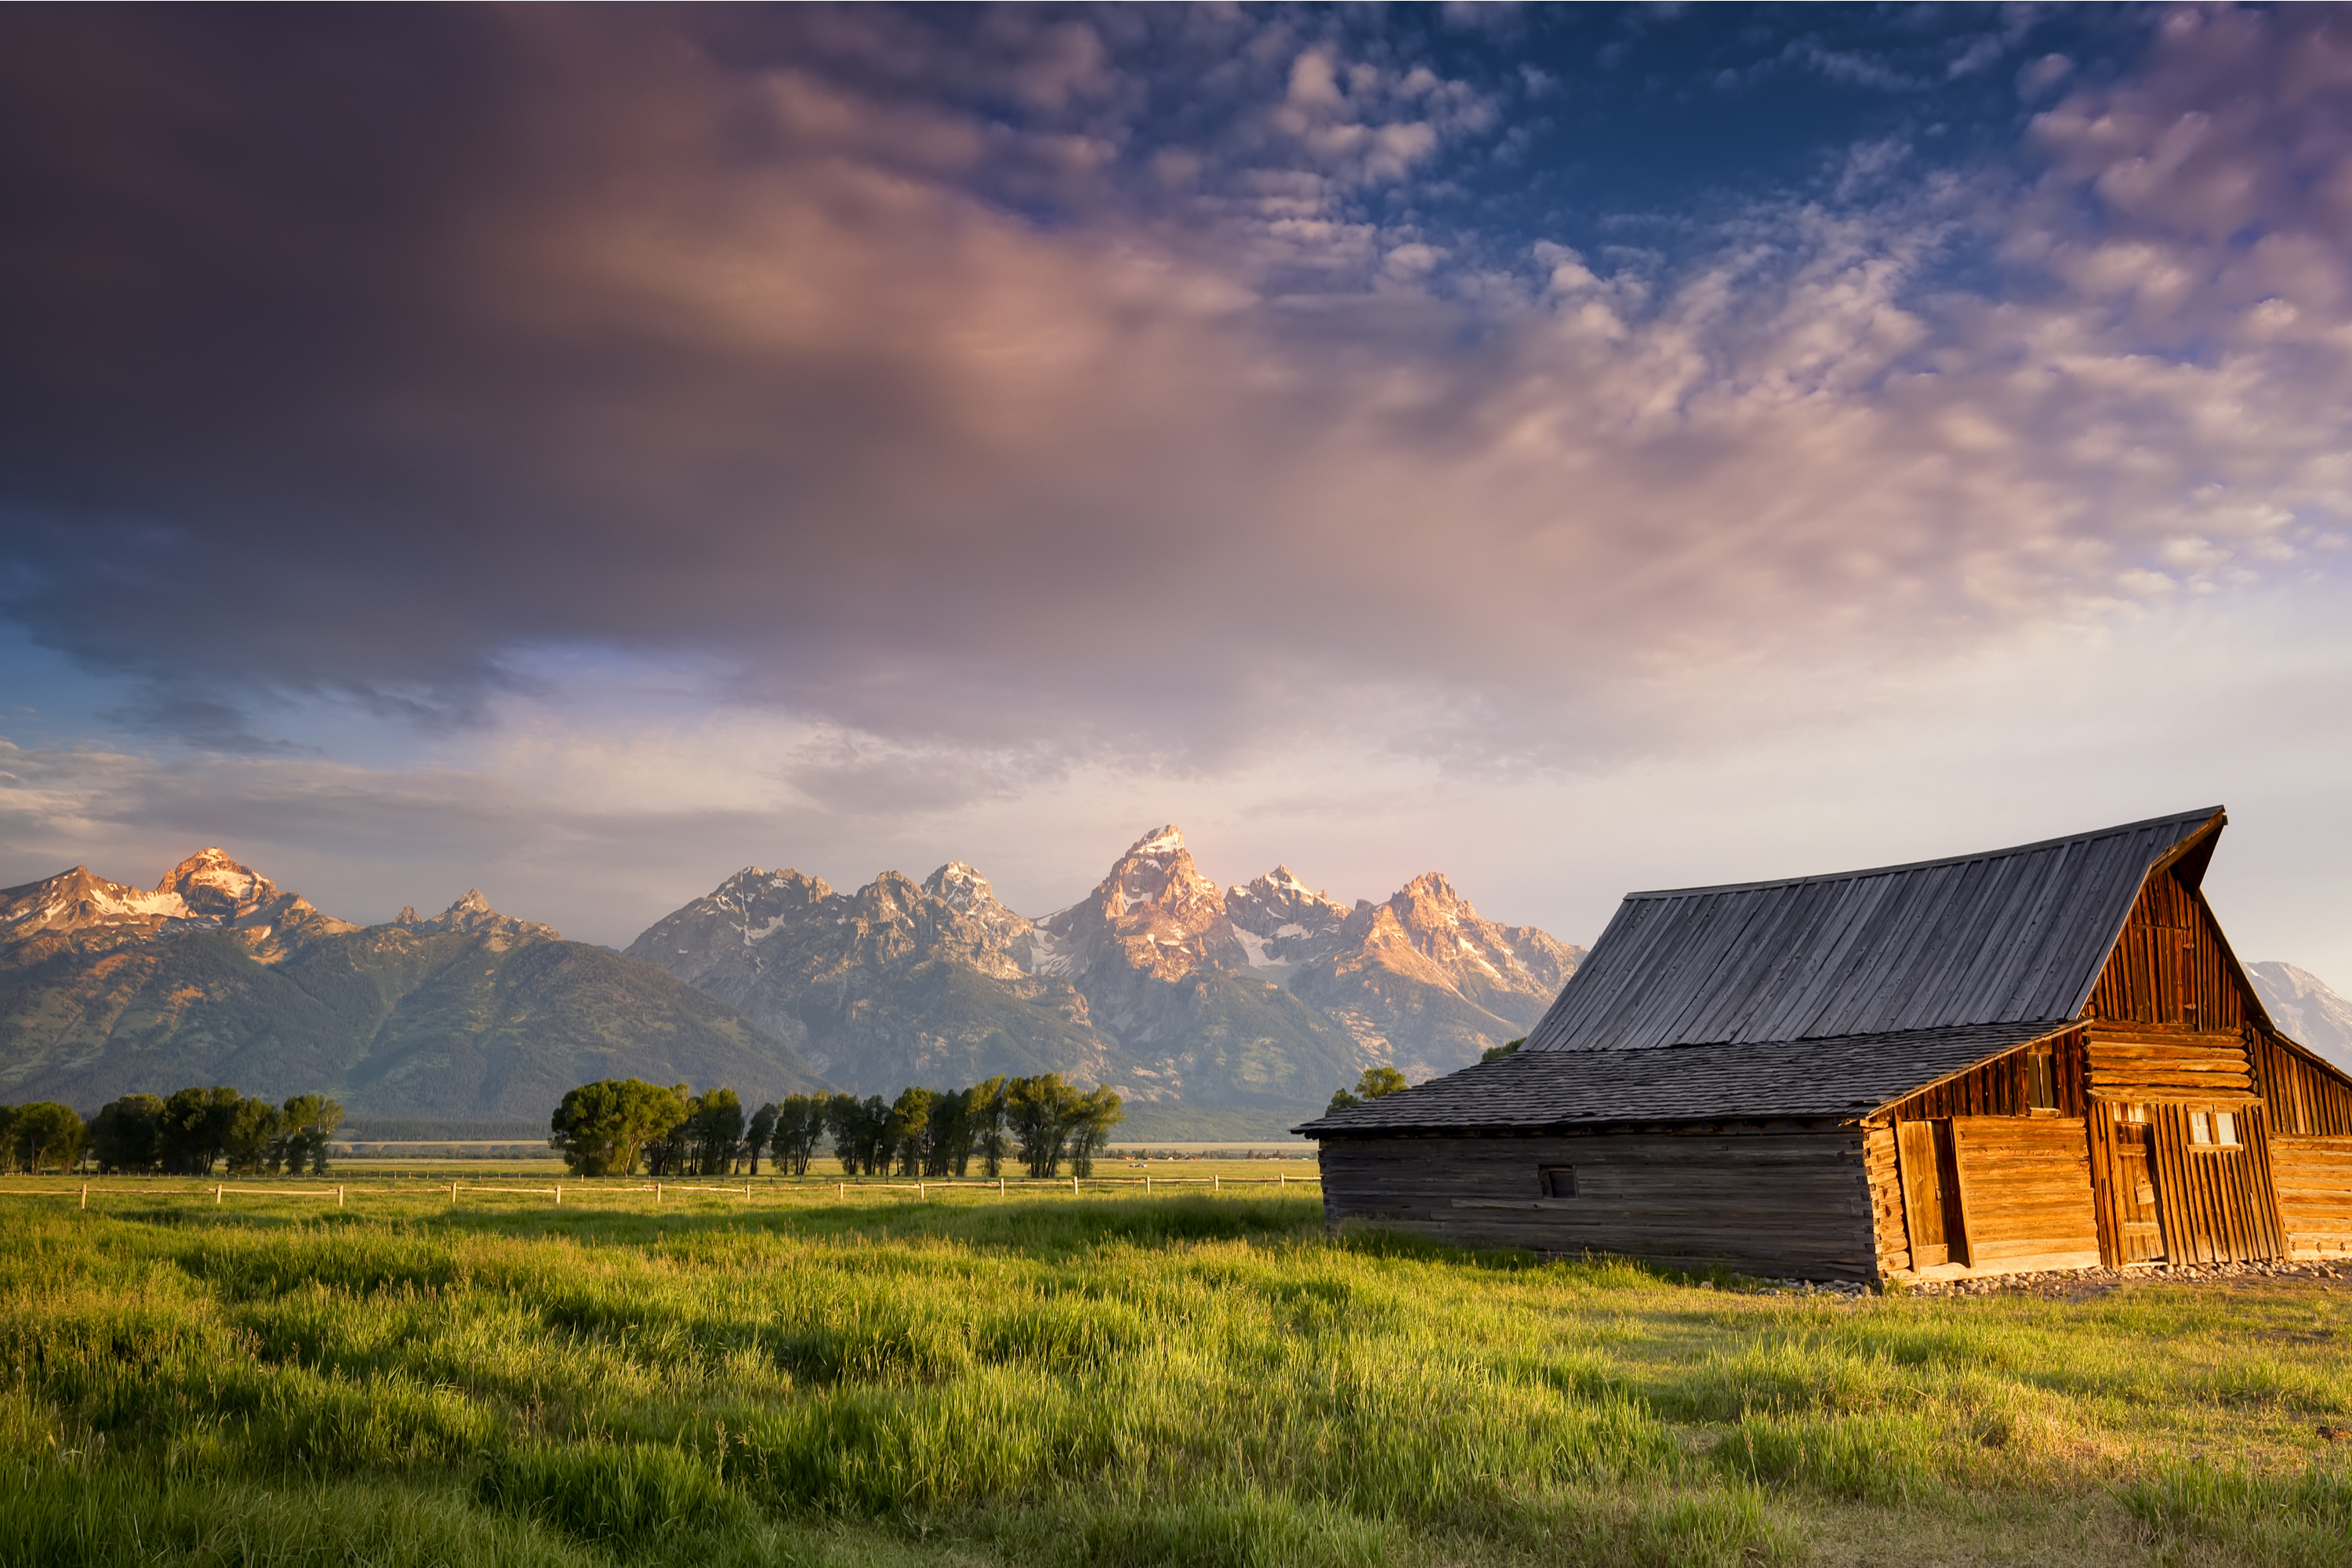 If you have never been to Jackson Hole, Wyoming, it should be at the top of your list! It is a hidden treasure of beauty. Take a look at all the things you can do there.